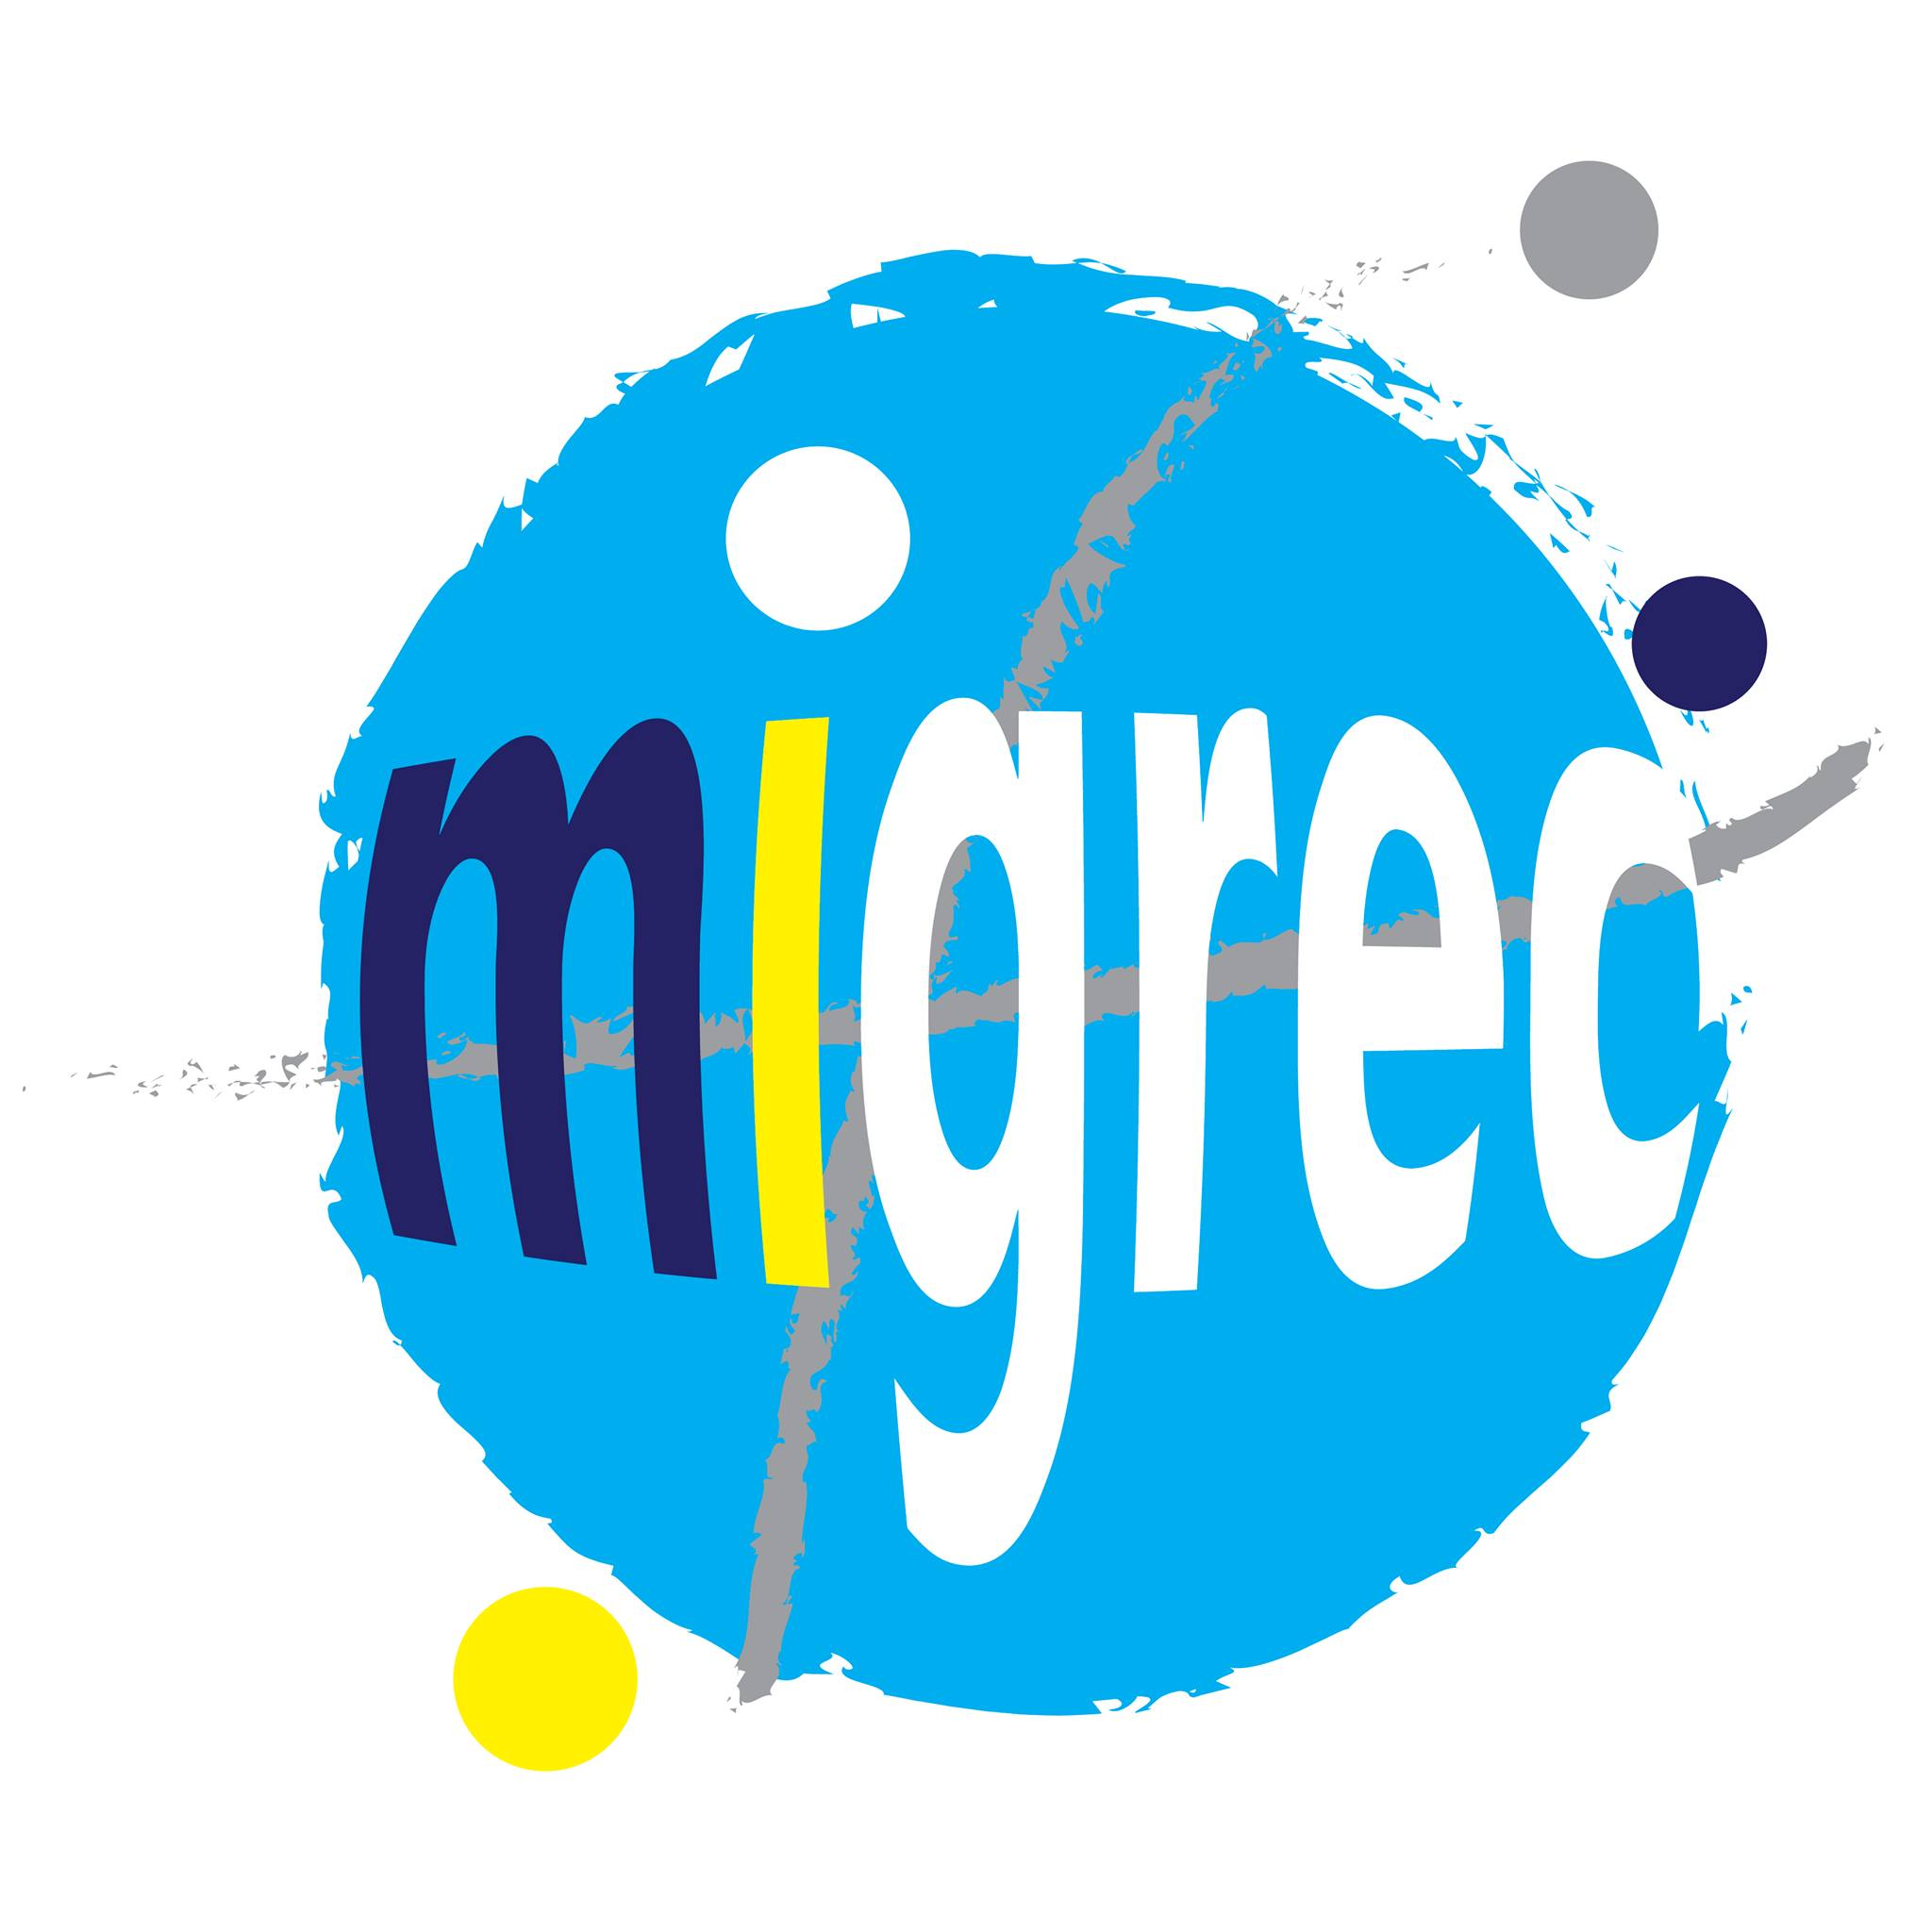 MIGREC project – Newsletter #4